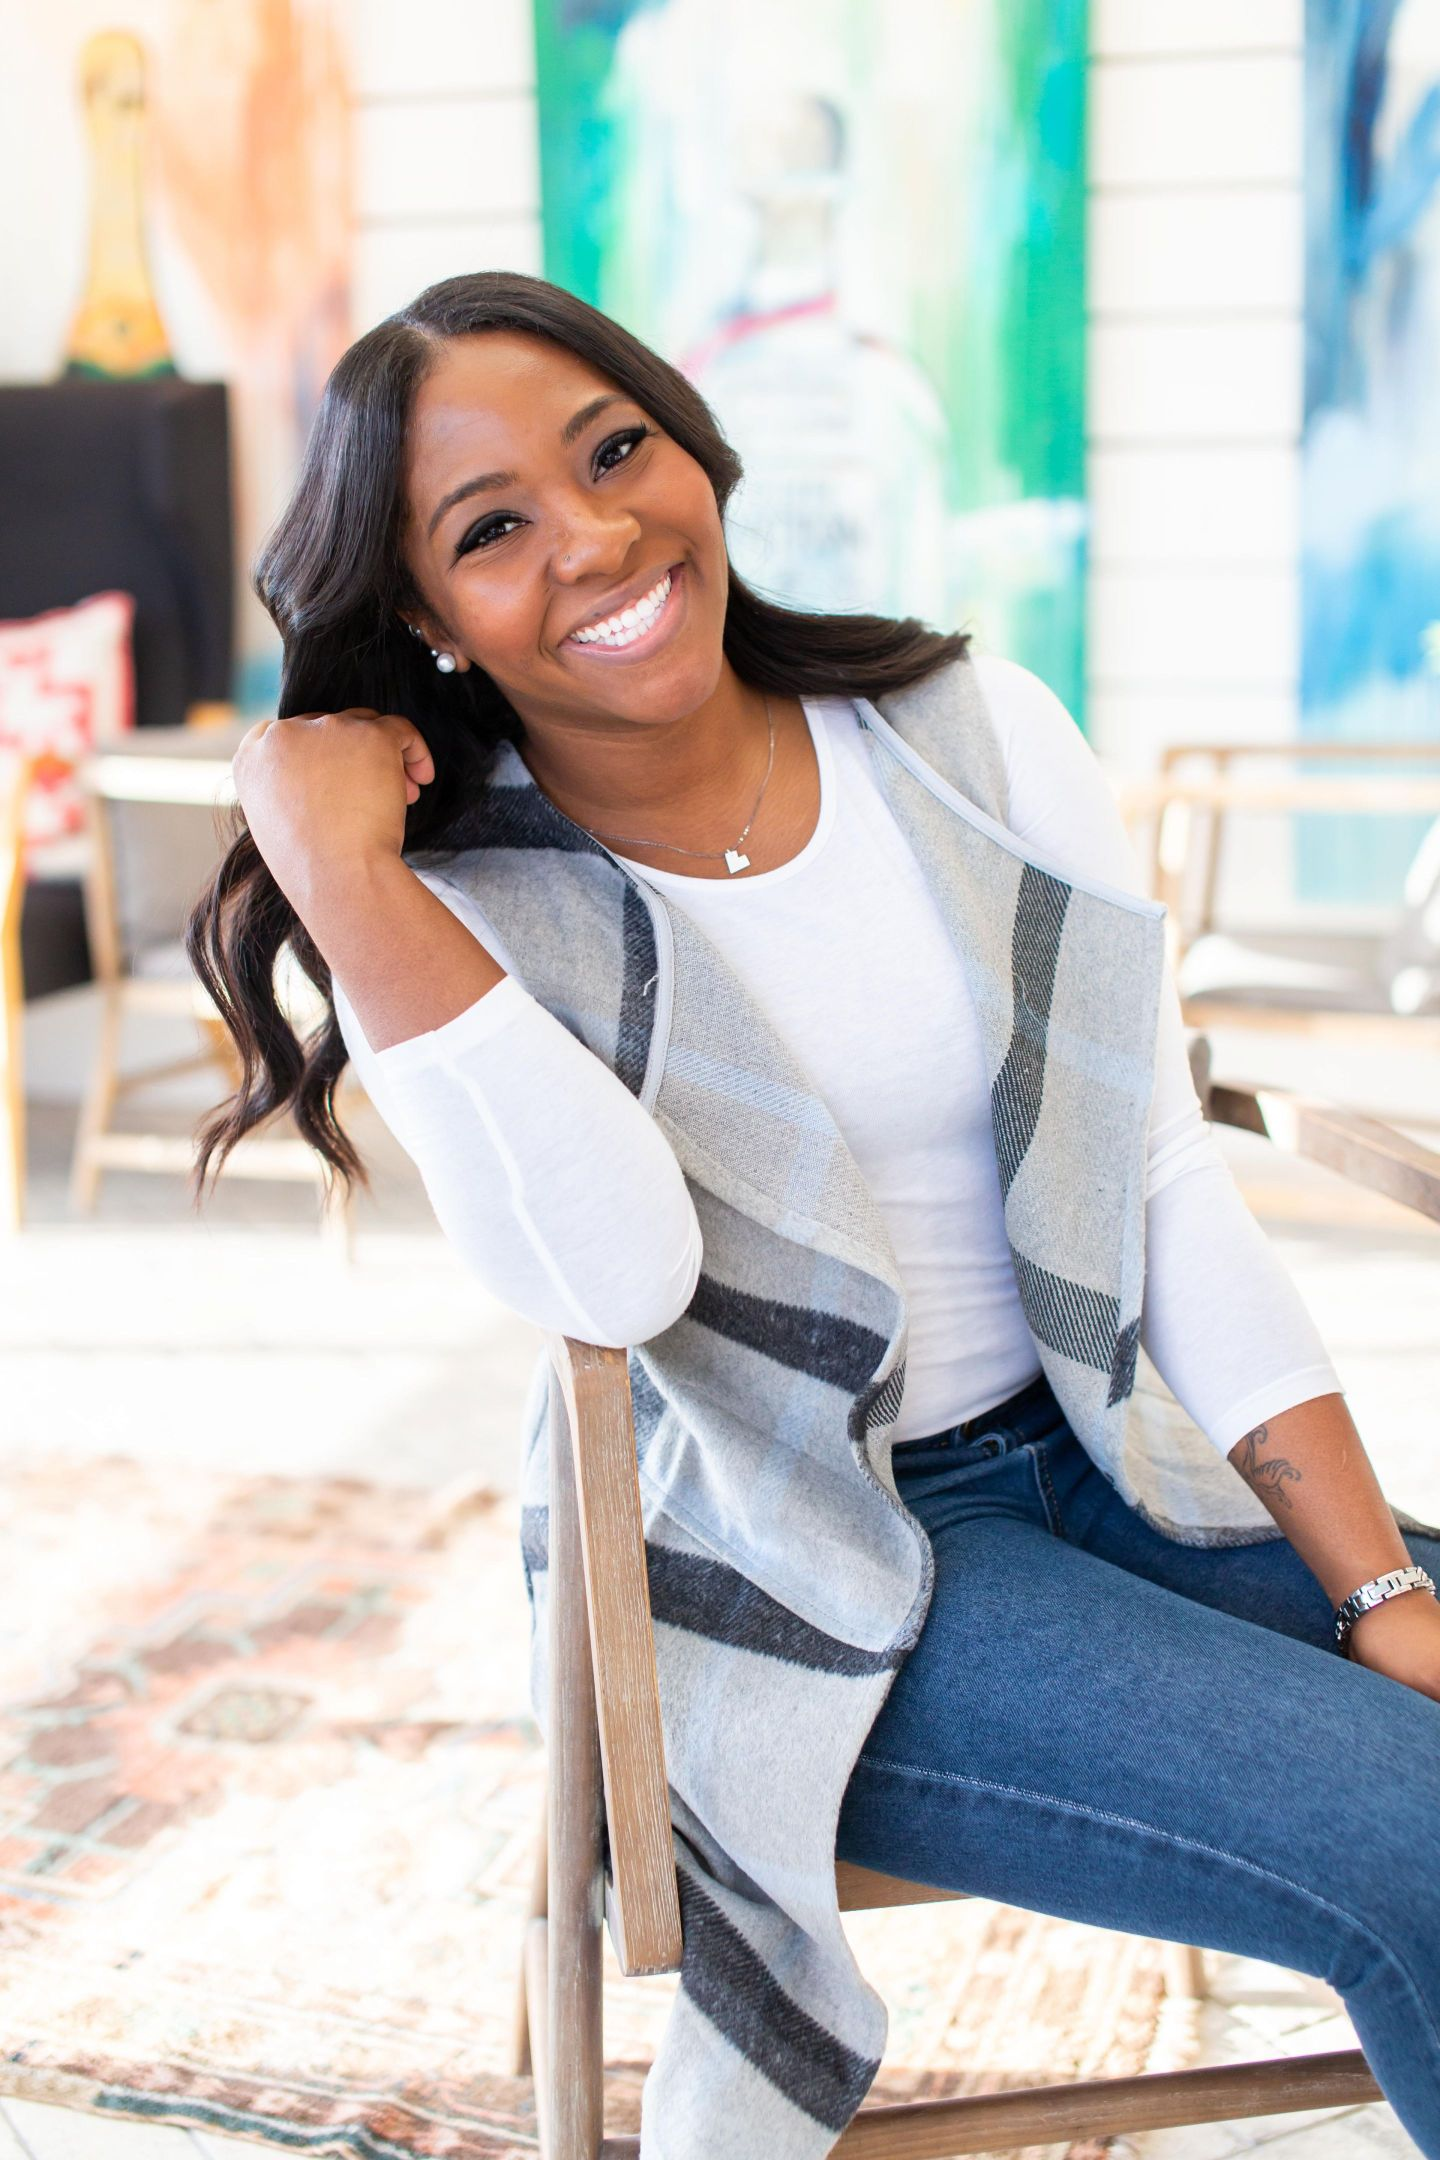 Leigh Love: Blogger, Business Professional, and HBCU Spelman Grad